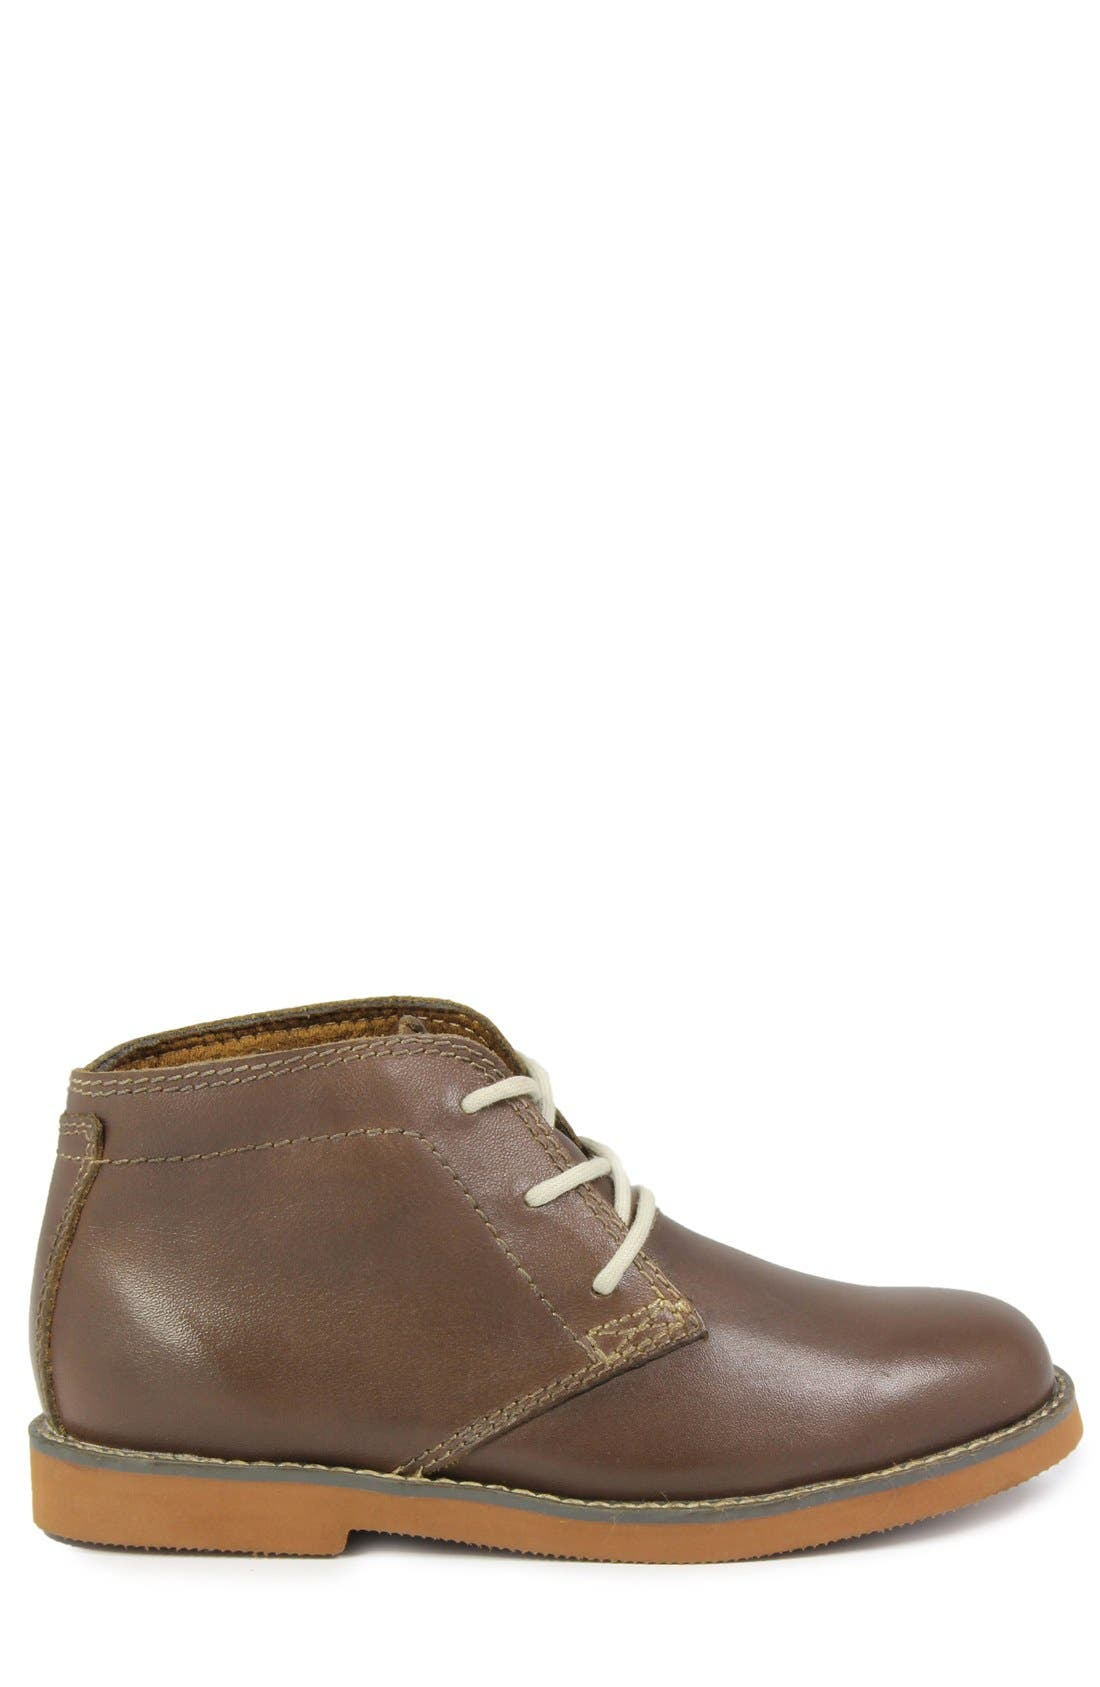 'Bucktown' Chukka Boot,                             Alternate thumbnail 5, color,